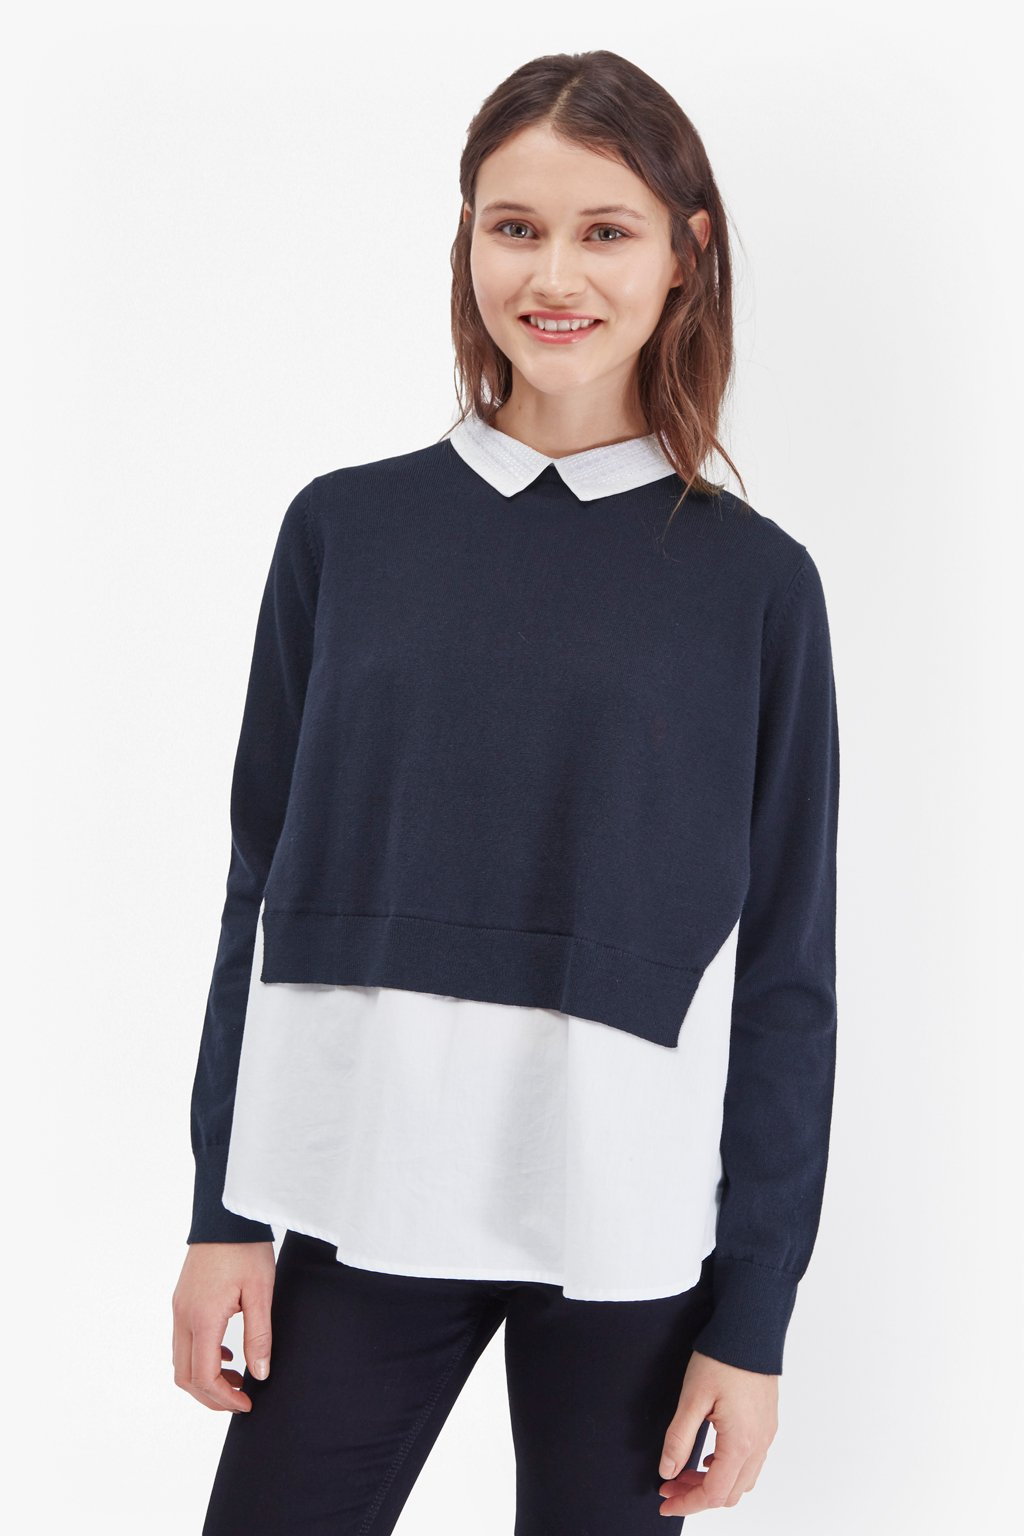 Florence Knits Shirt Jumper Knitwear French Connection